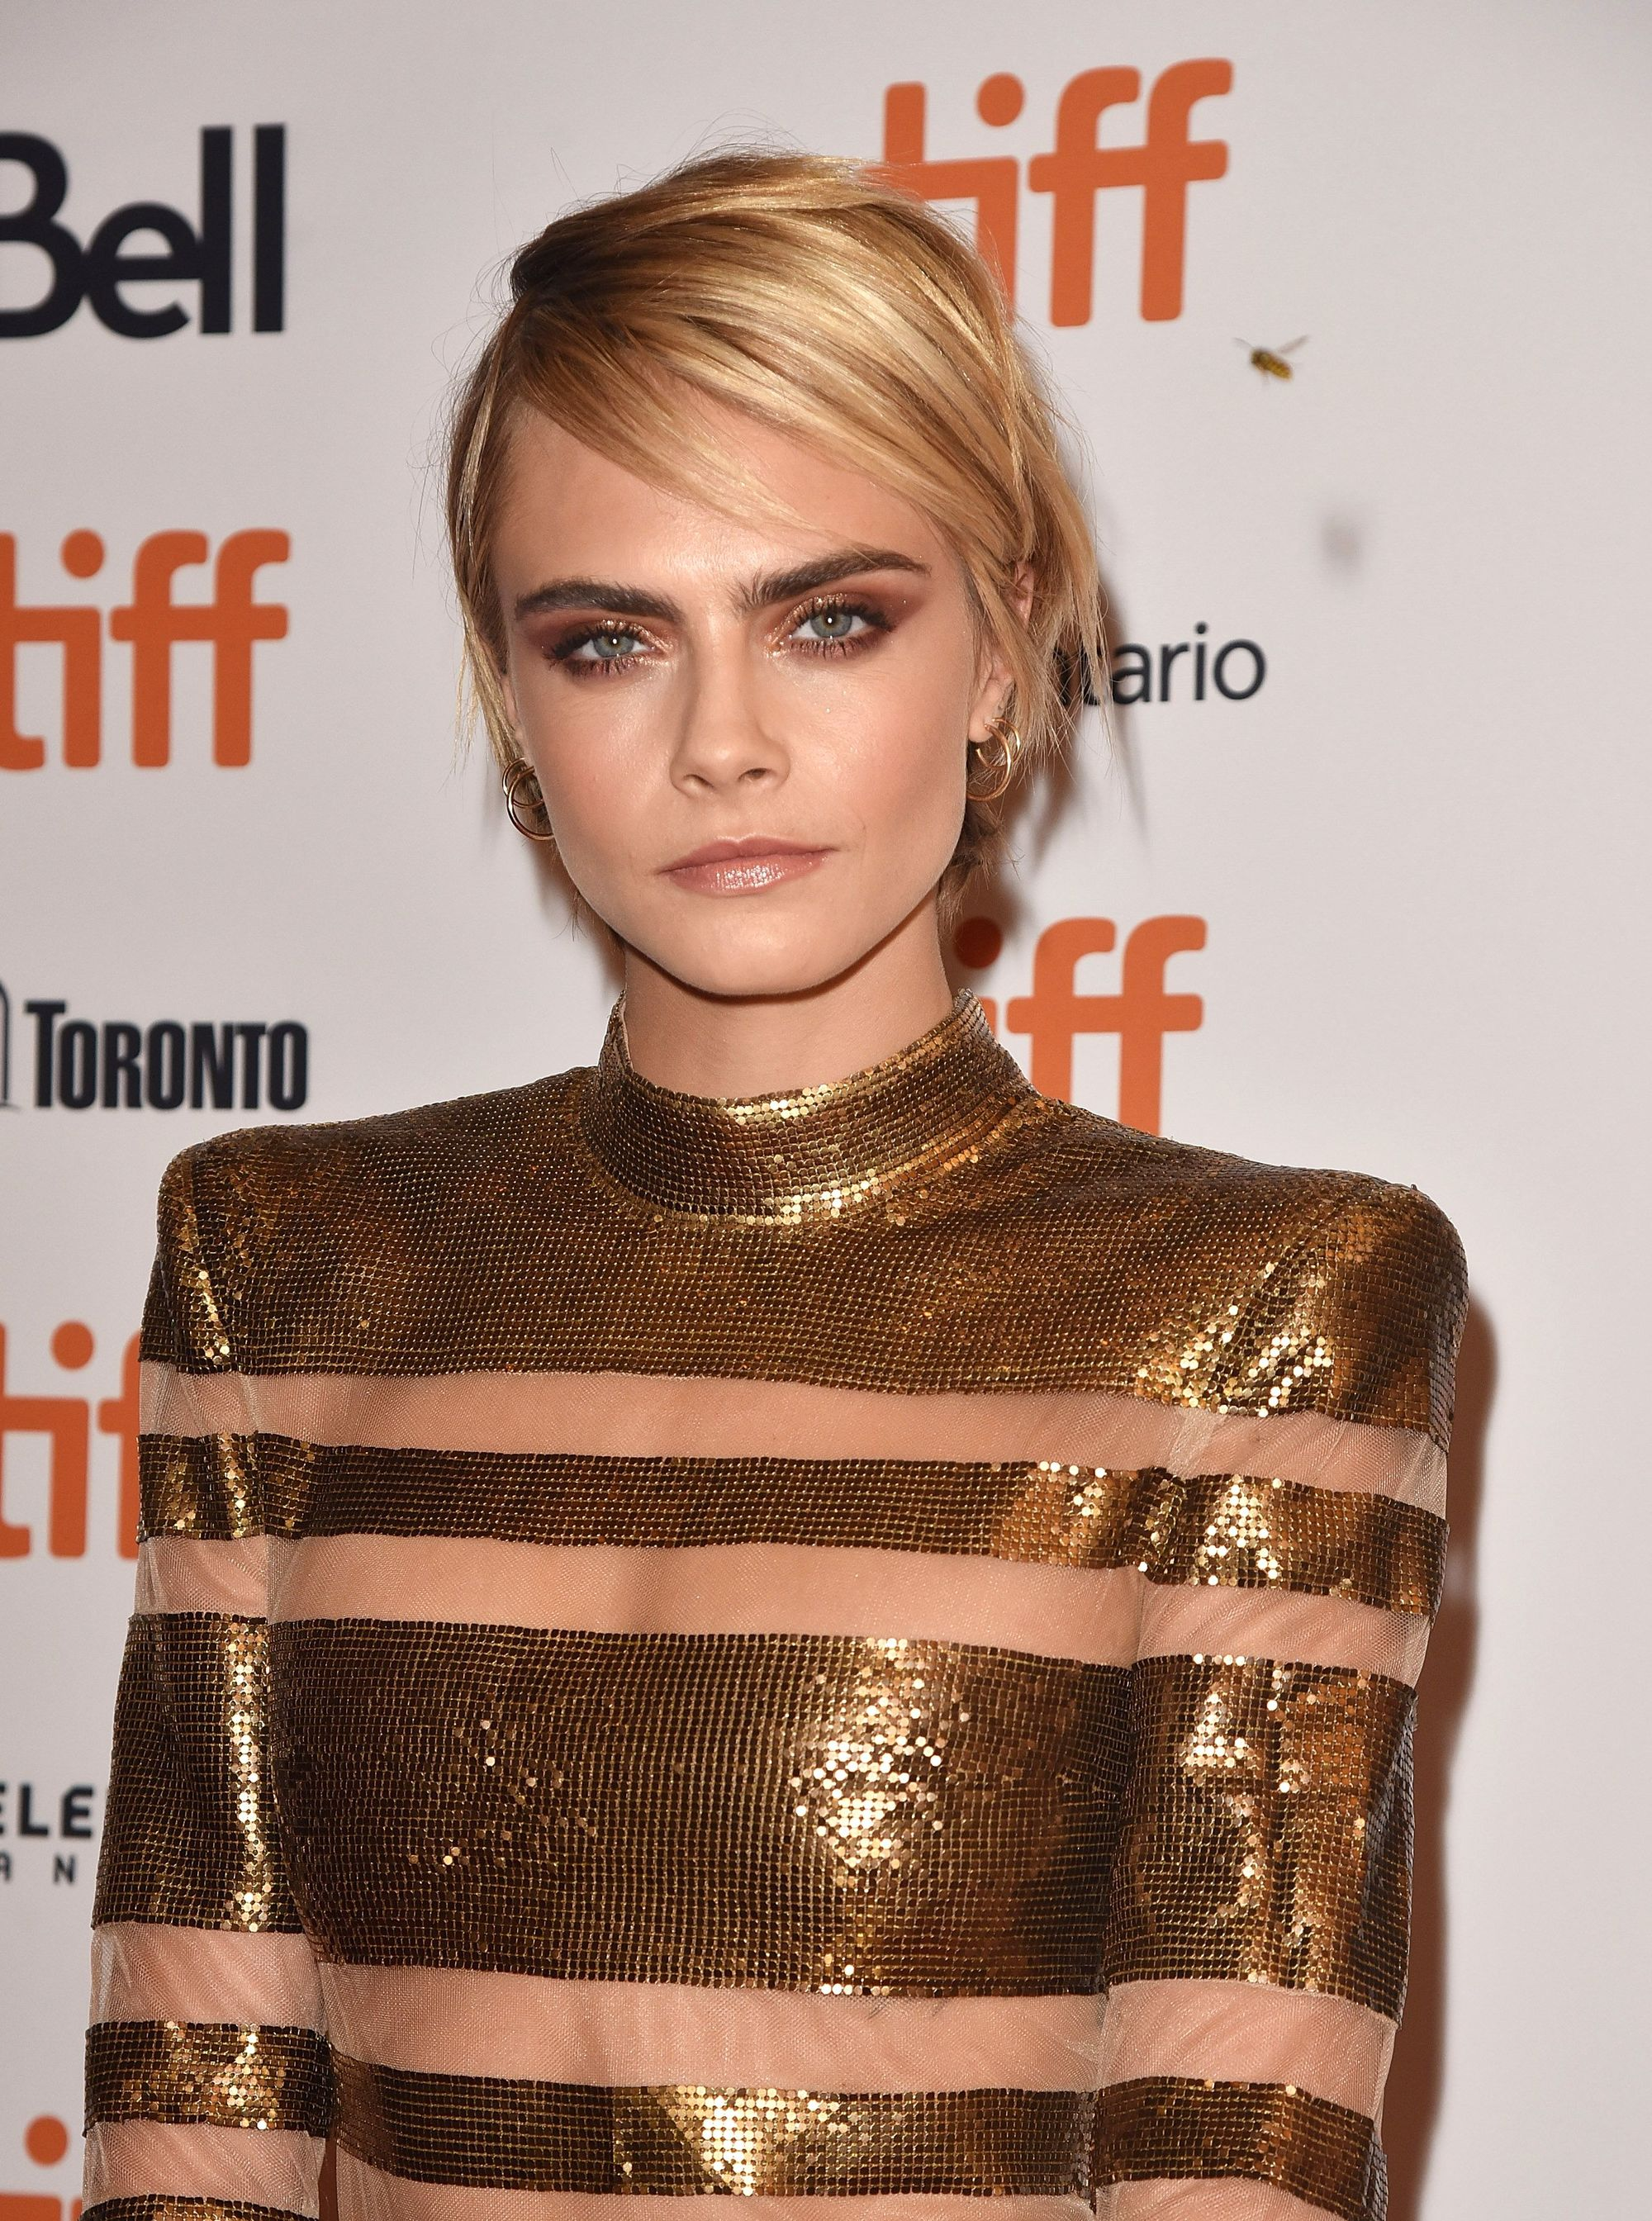 Cara Delevingne with short side-swept golden long pixie, wearing all gold on the red carpet